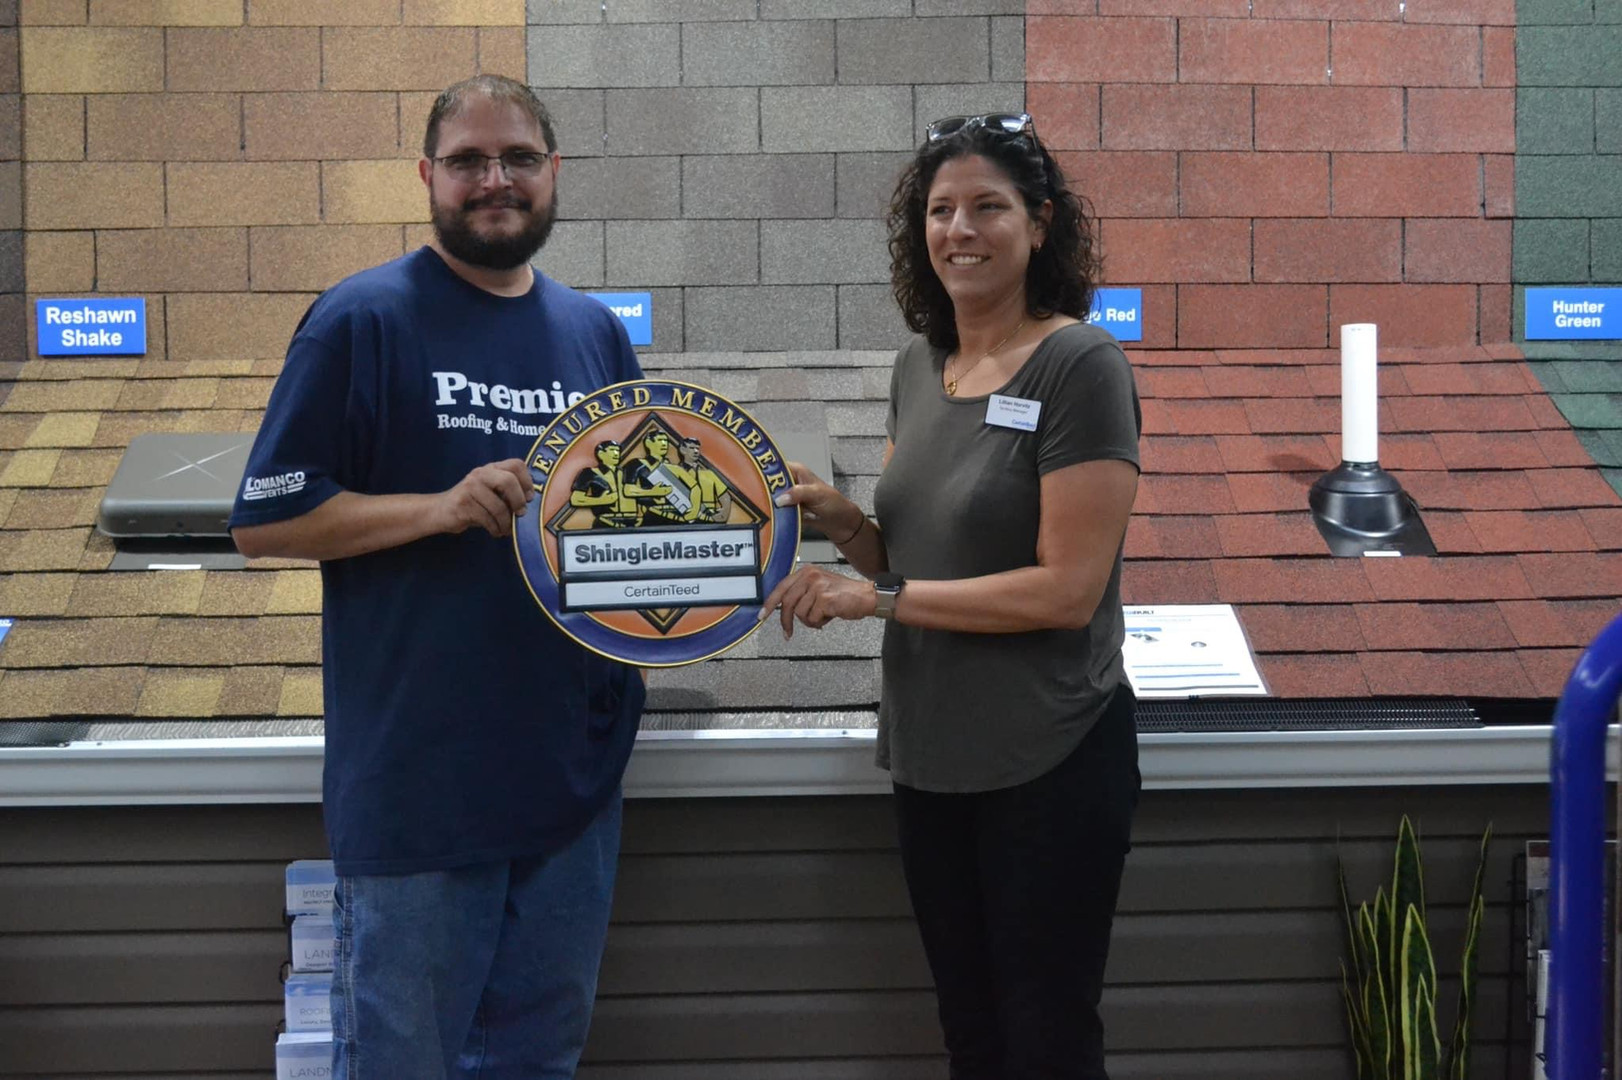 CertainTeed Roofing Products Presenting Premier Roofing, llc With The Tenured Certified Installers Certification Award.